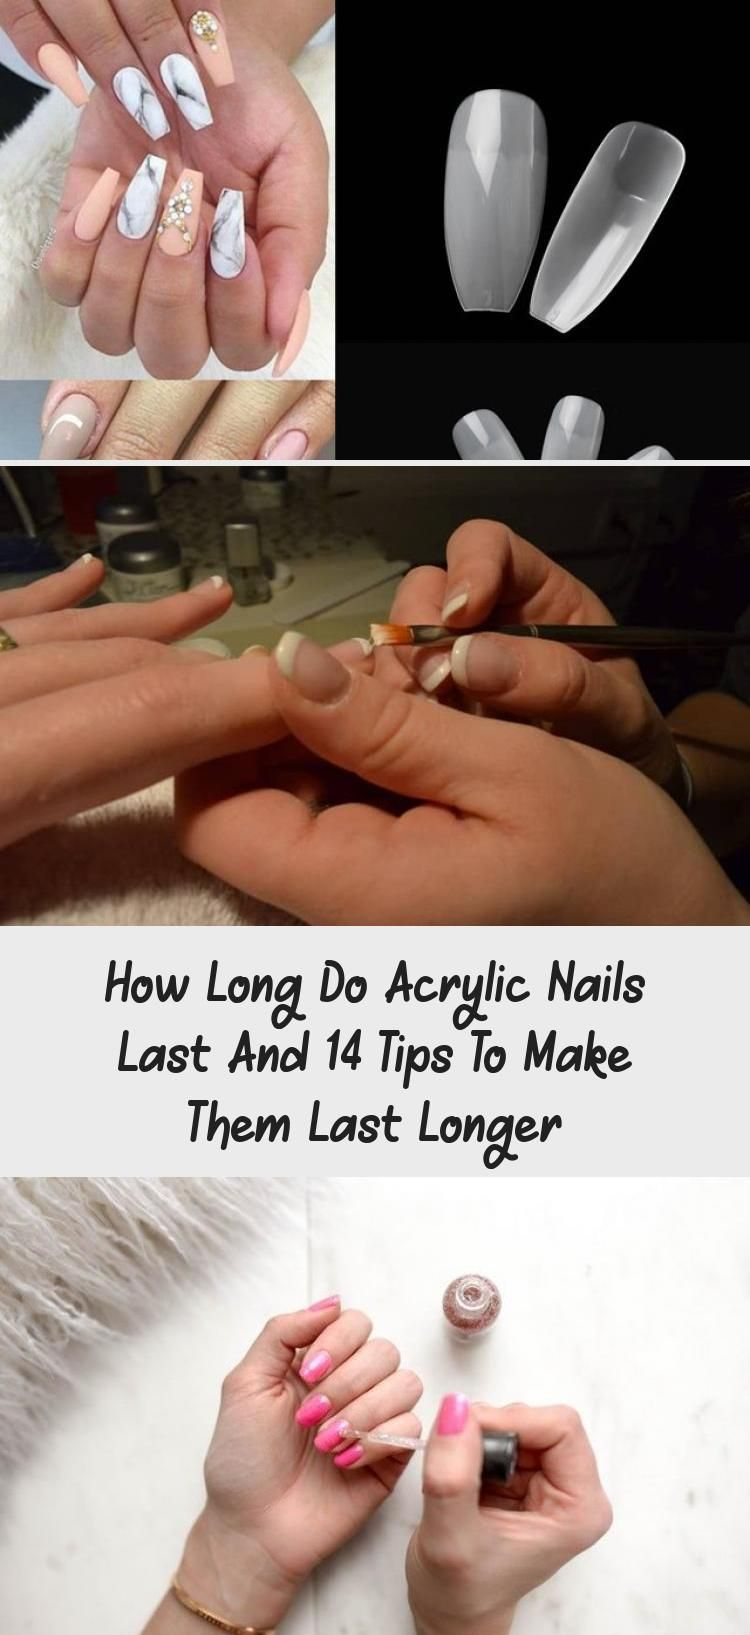 The Acrylic Nail Is Employed To Beautify And Add Color To Your Nails Every Woman Wants Her Fing Acrylic Nails Neutral Nails Acrylic Acrylic Nails Kylie Jenner